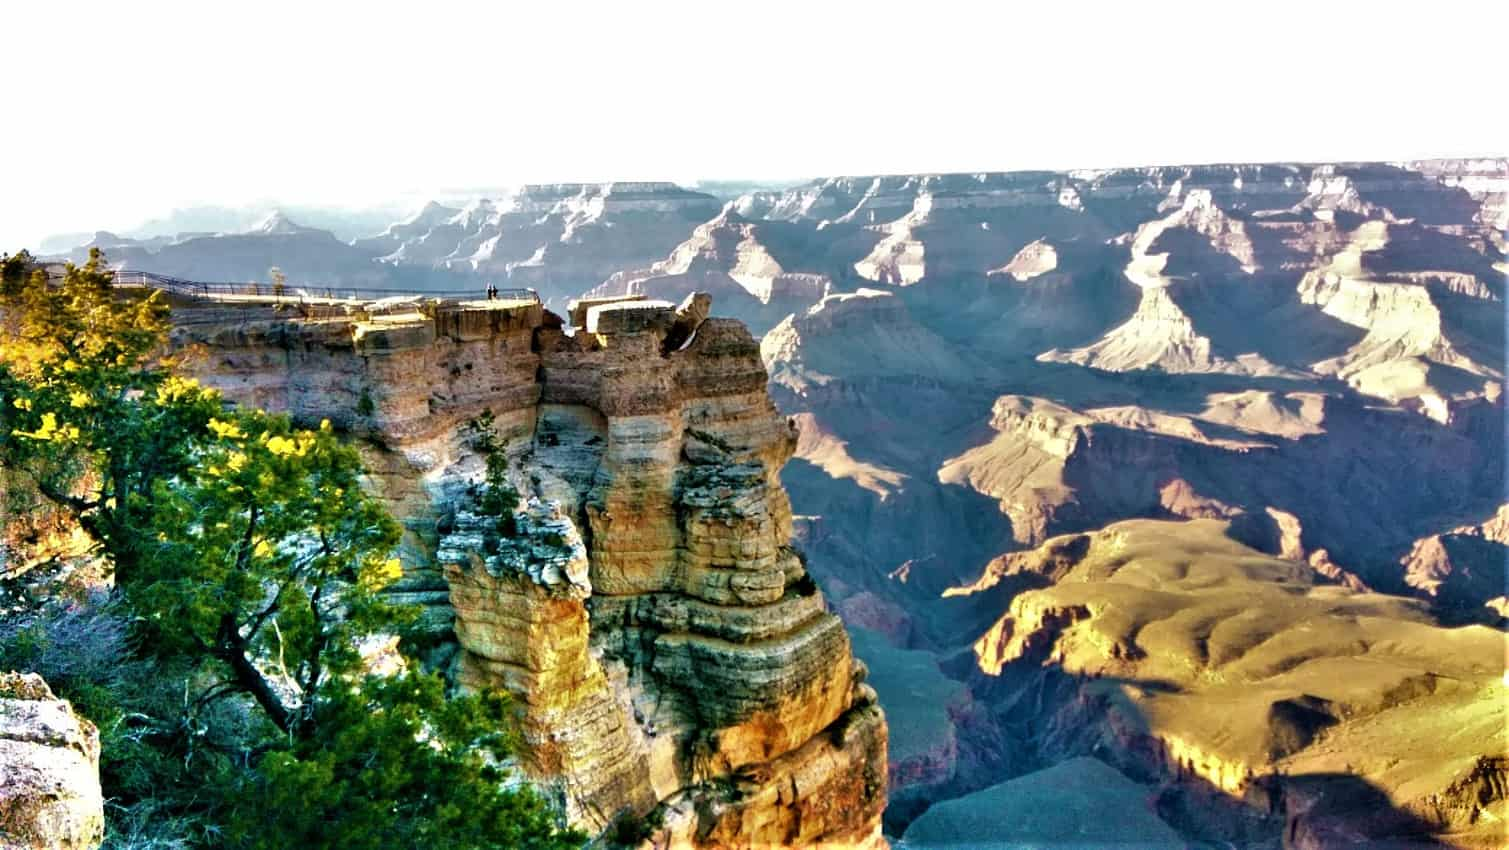 Grand Canyon during the pandemic